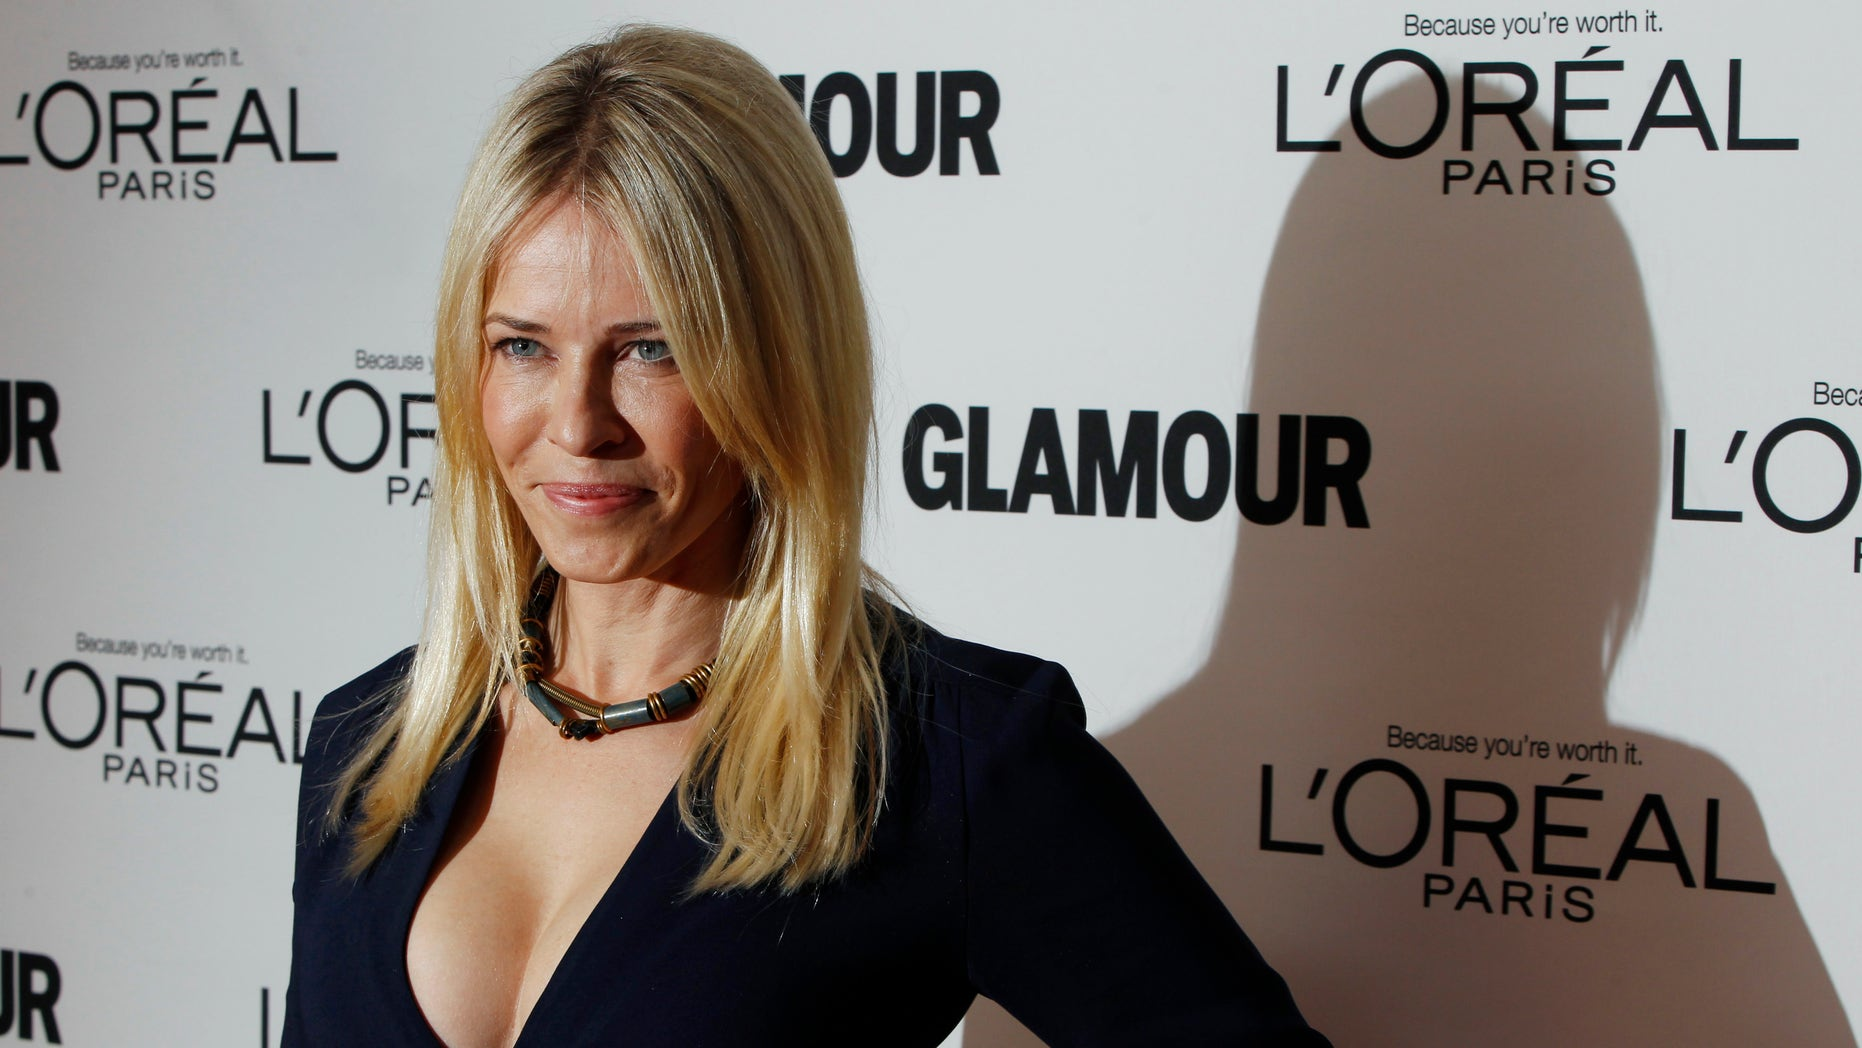 Comedienne Chelsea Handler arrives to attend the 21st annual Glamour Magazine Women of the Year award ceremony in New York November 7, 2011. REUTERS/Lucas Jackson (UNITED STATES - Tags: ENTERTAINMENT) - RTR2TQJ8